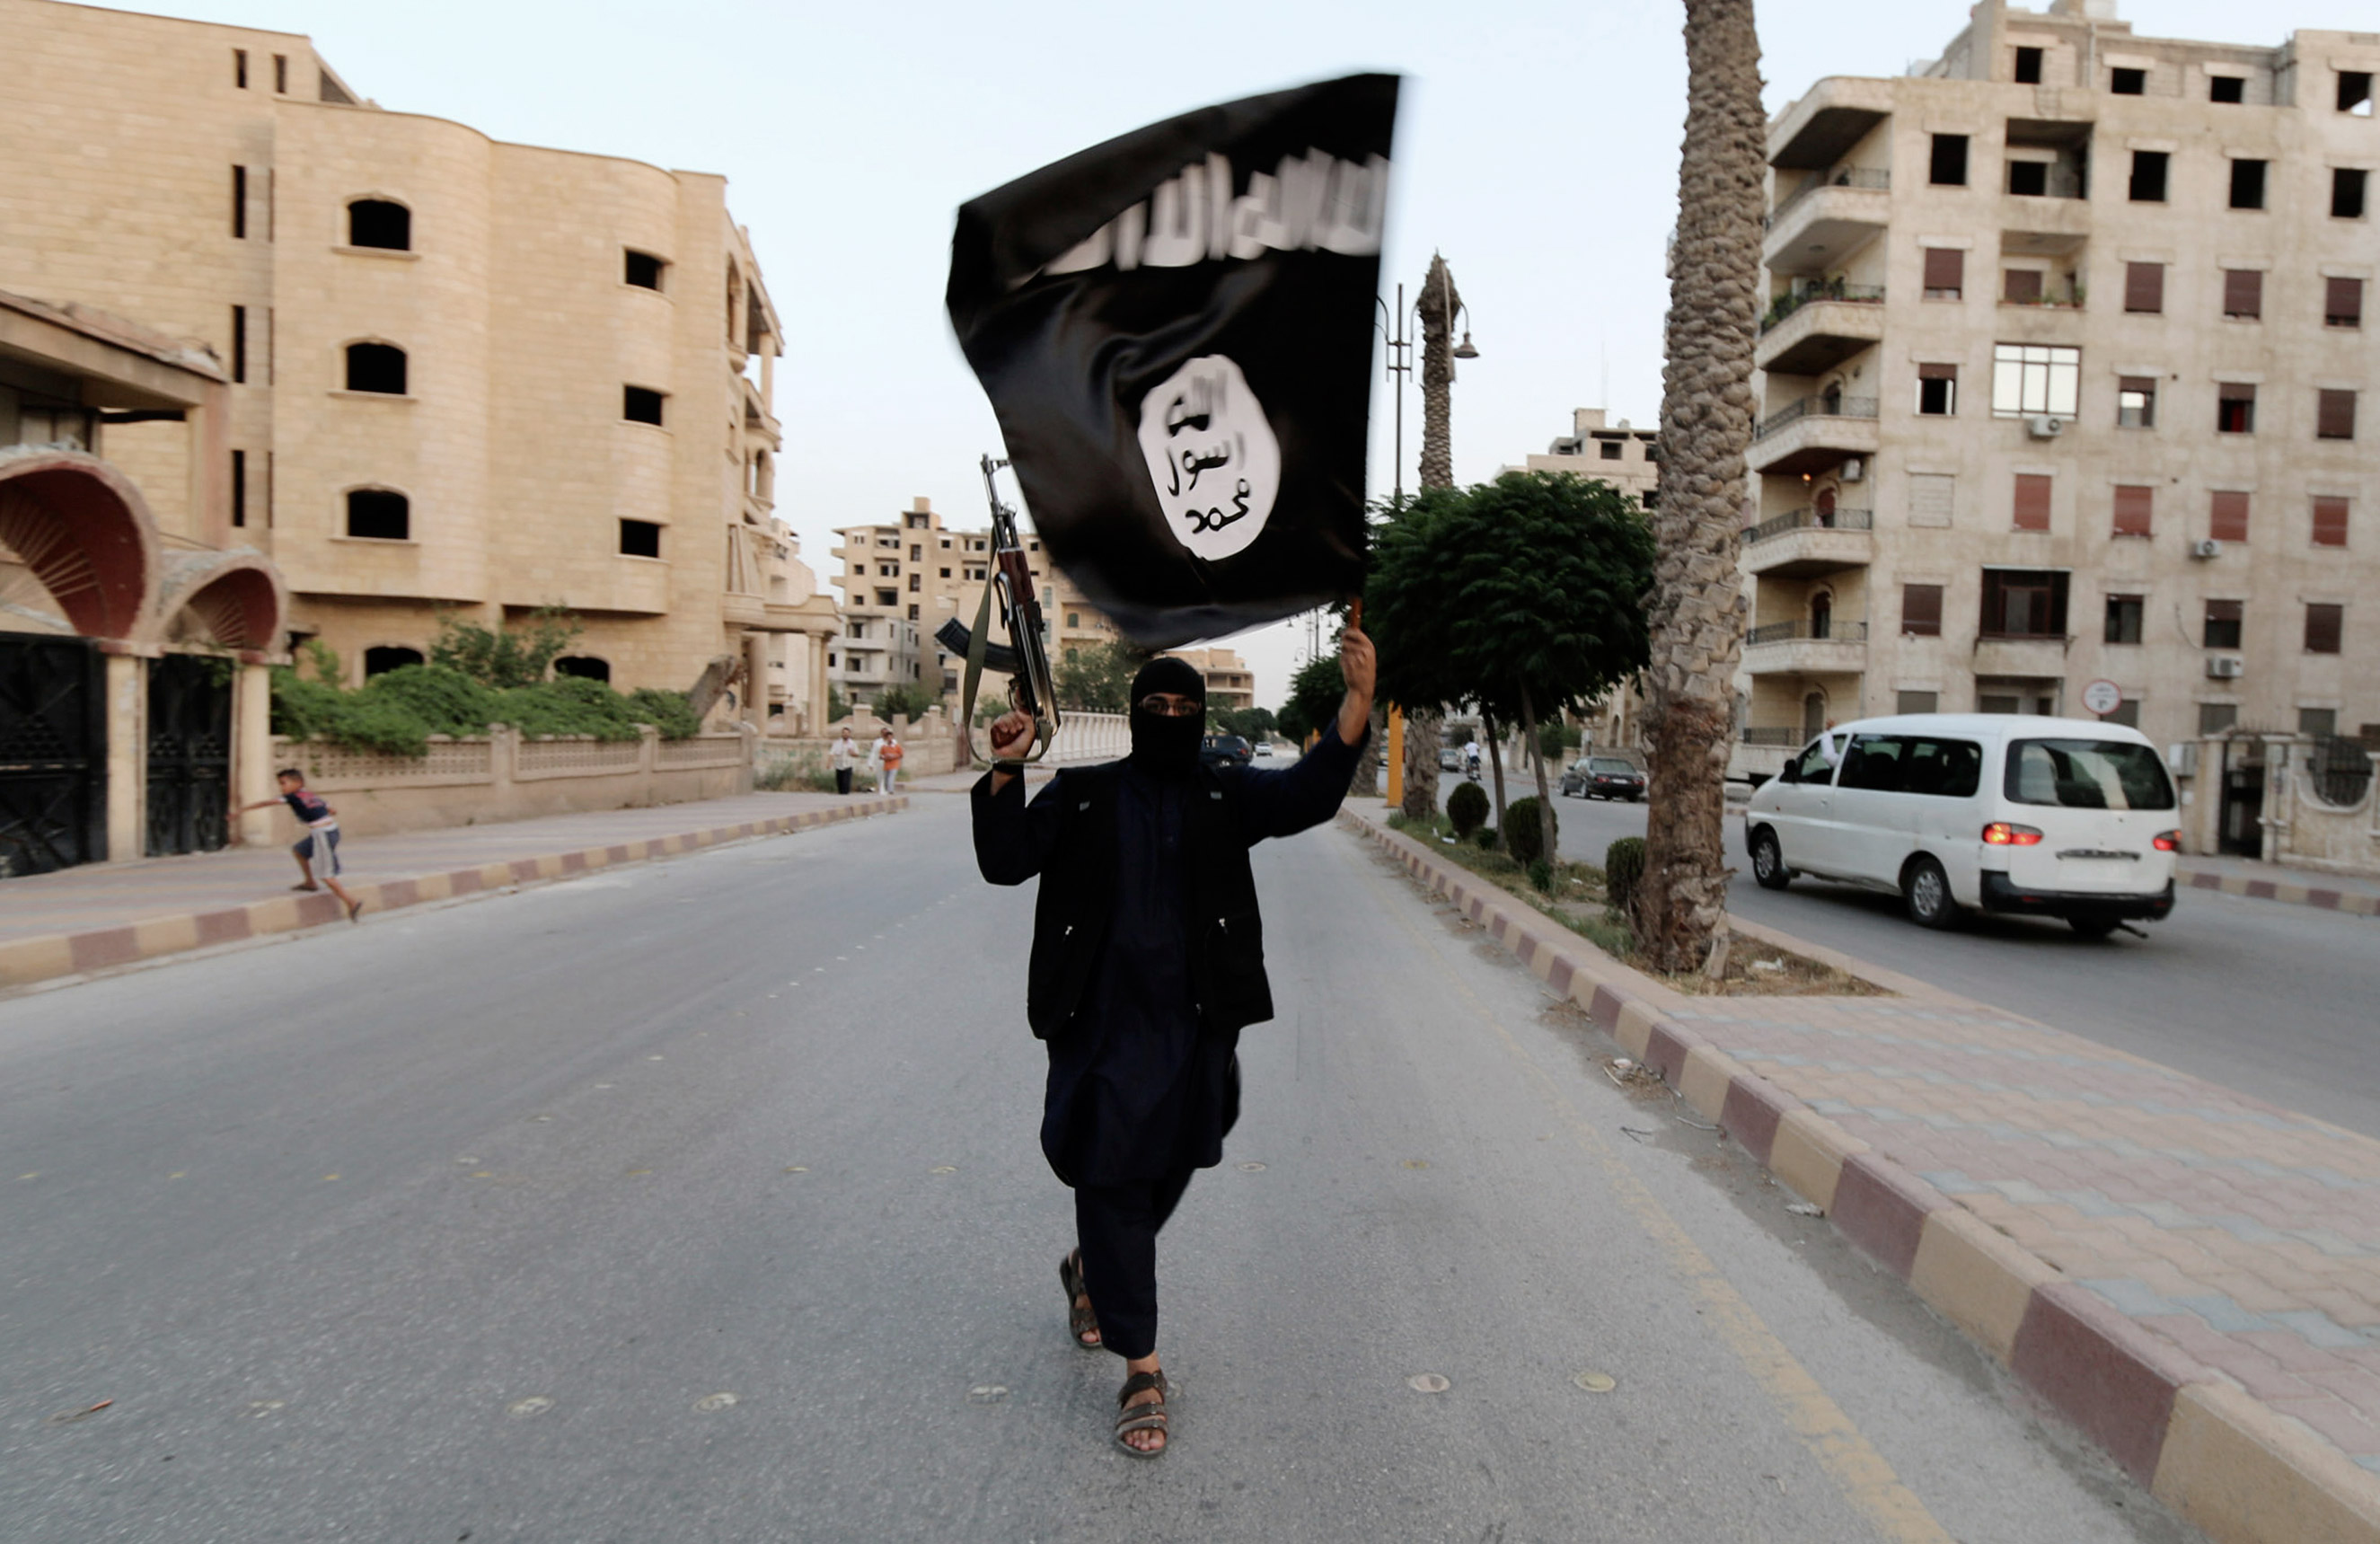 A member loyal to the Islamic State in Iraq and the Levant (ISIL) waves an ISIL flag in Raqqa on June 29, 2014.